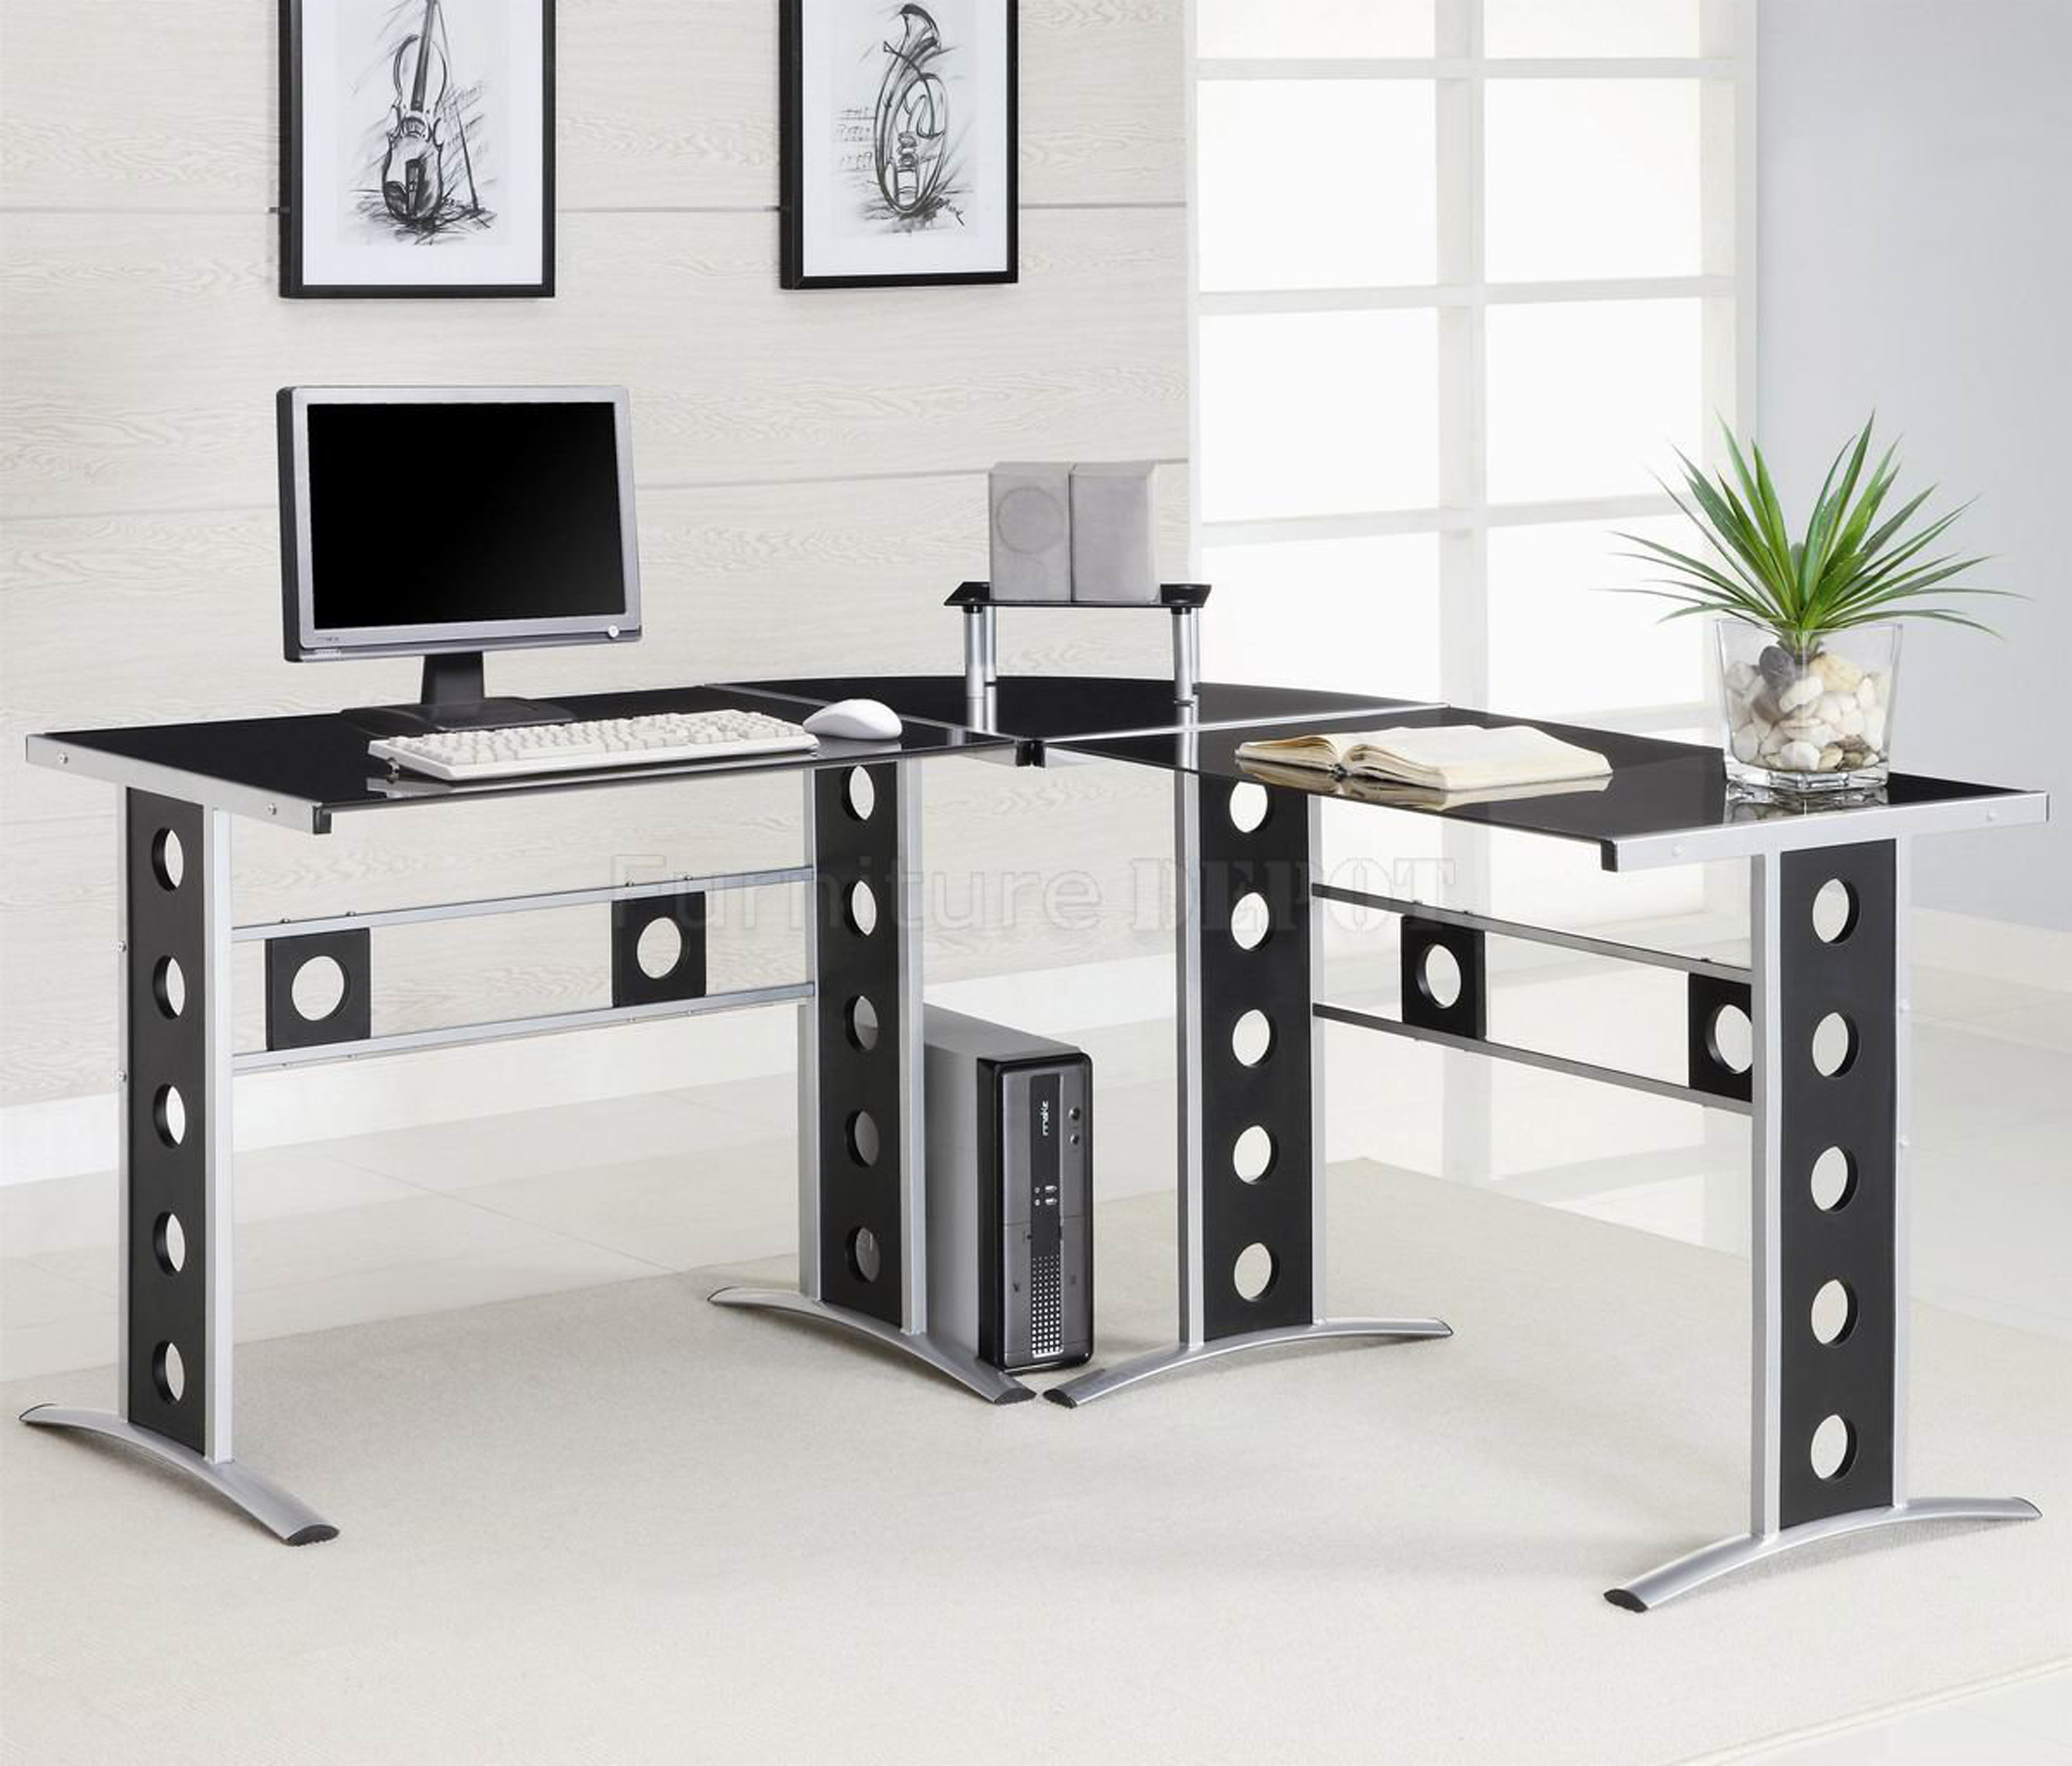 Luxury Modern Home Office Desk Design Idea In Black With Black Silver Base With Hole Accents White Books And Glass Pot Wth White Stones And Green Plant Simple Modern Home Office Desk De (Image 101 of 123)